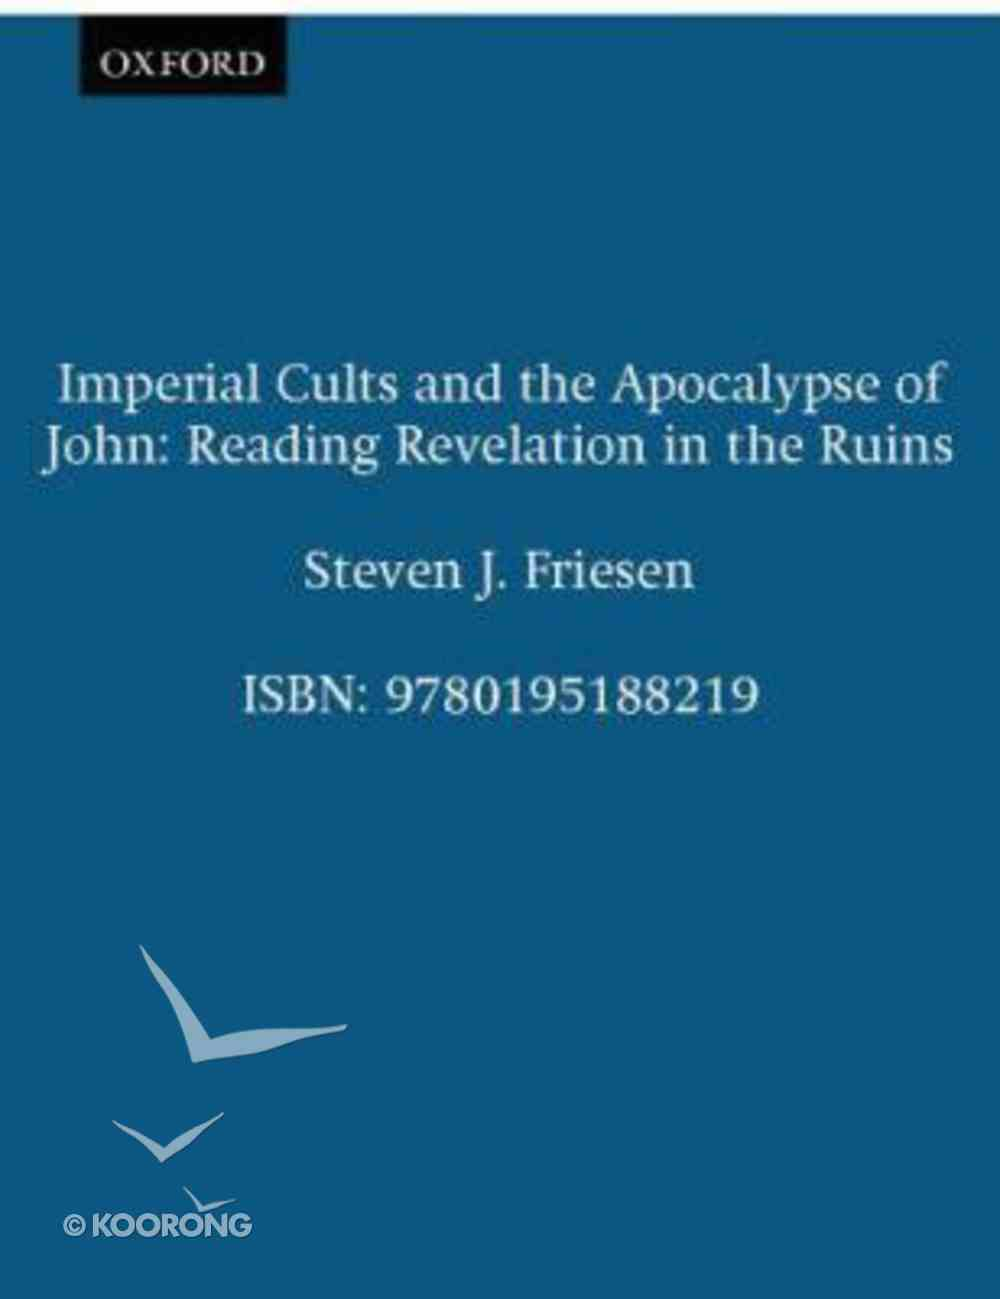 Imperial Cults and the Apocalypse of John Paperback